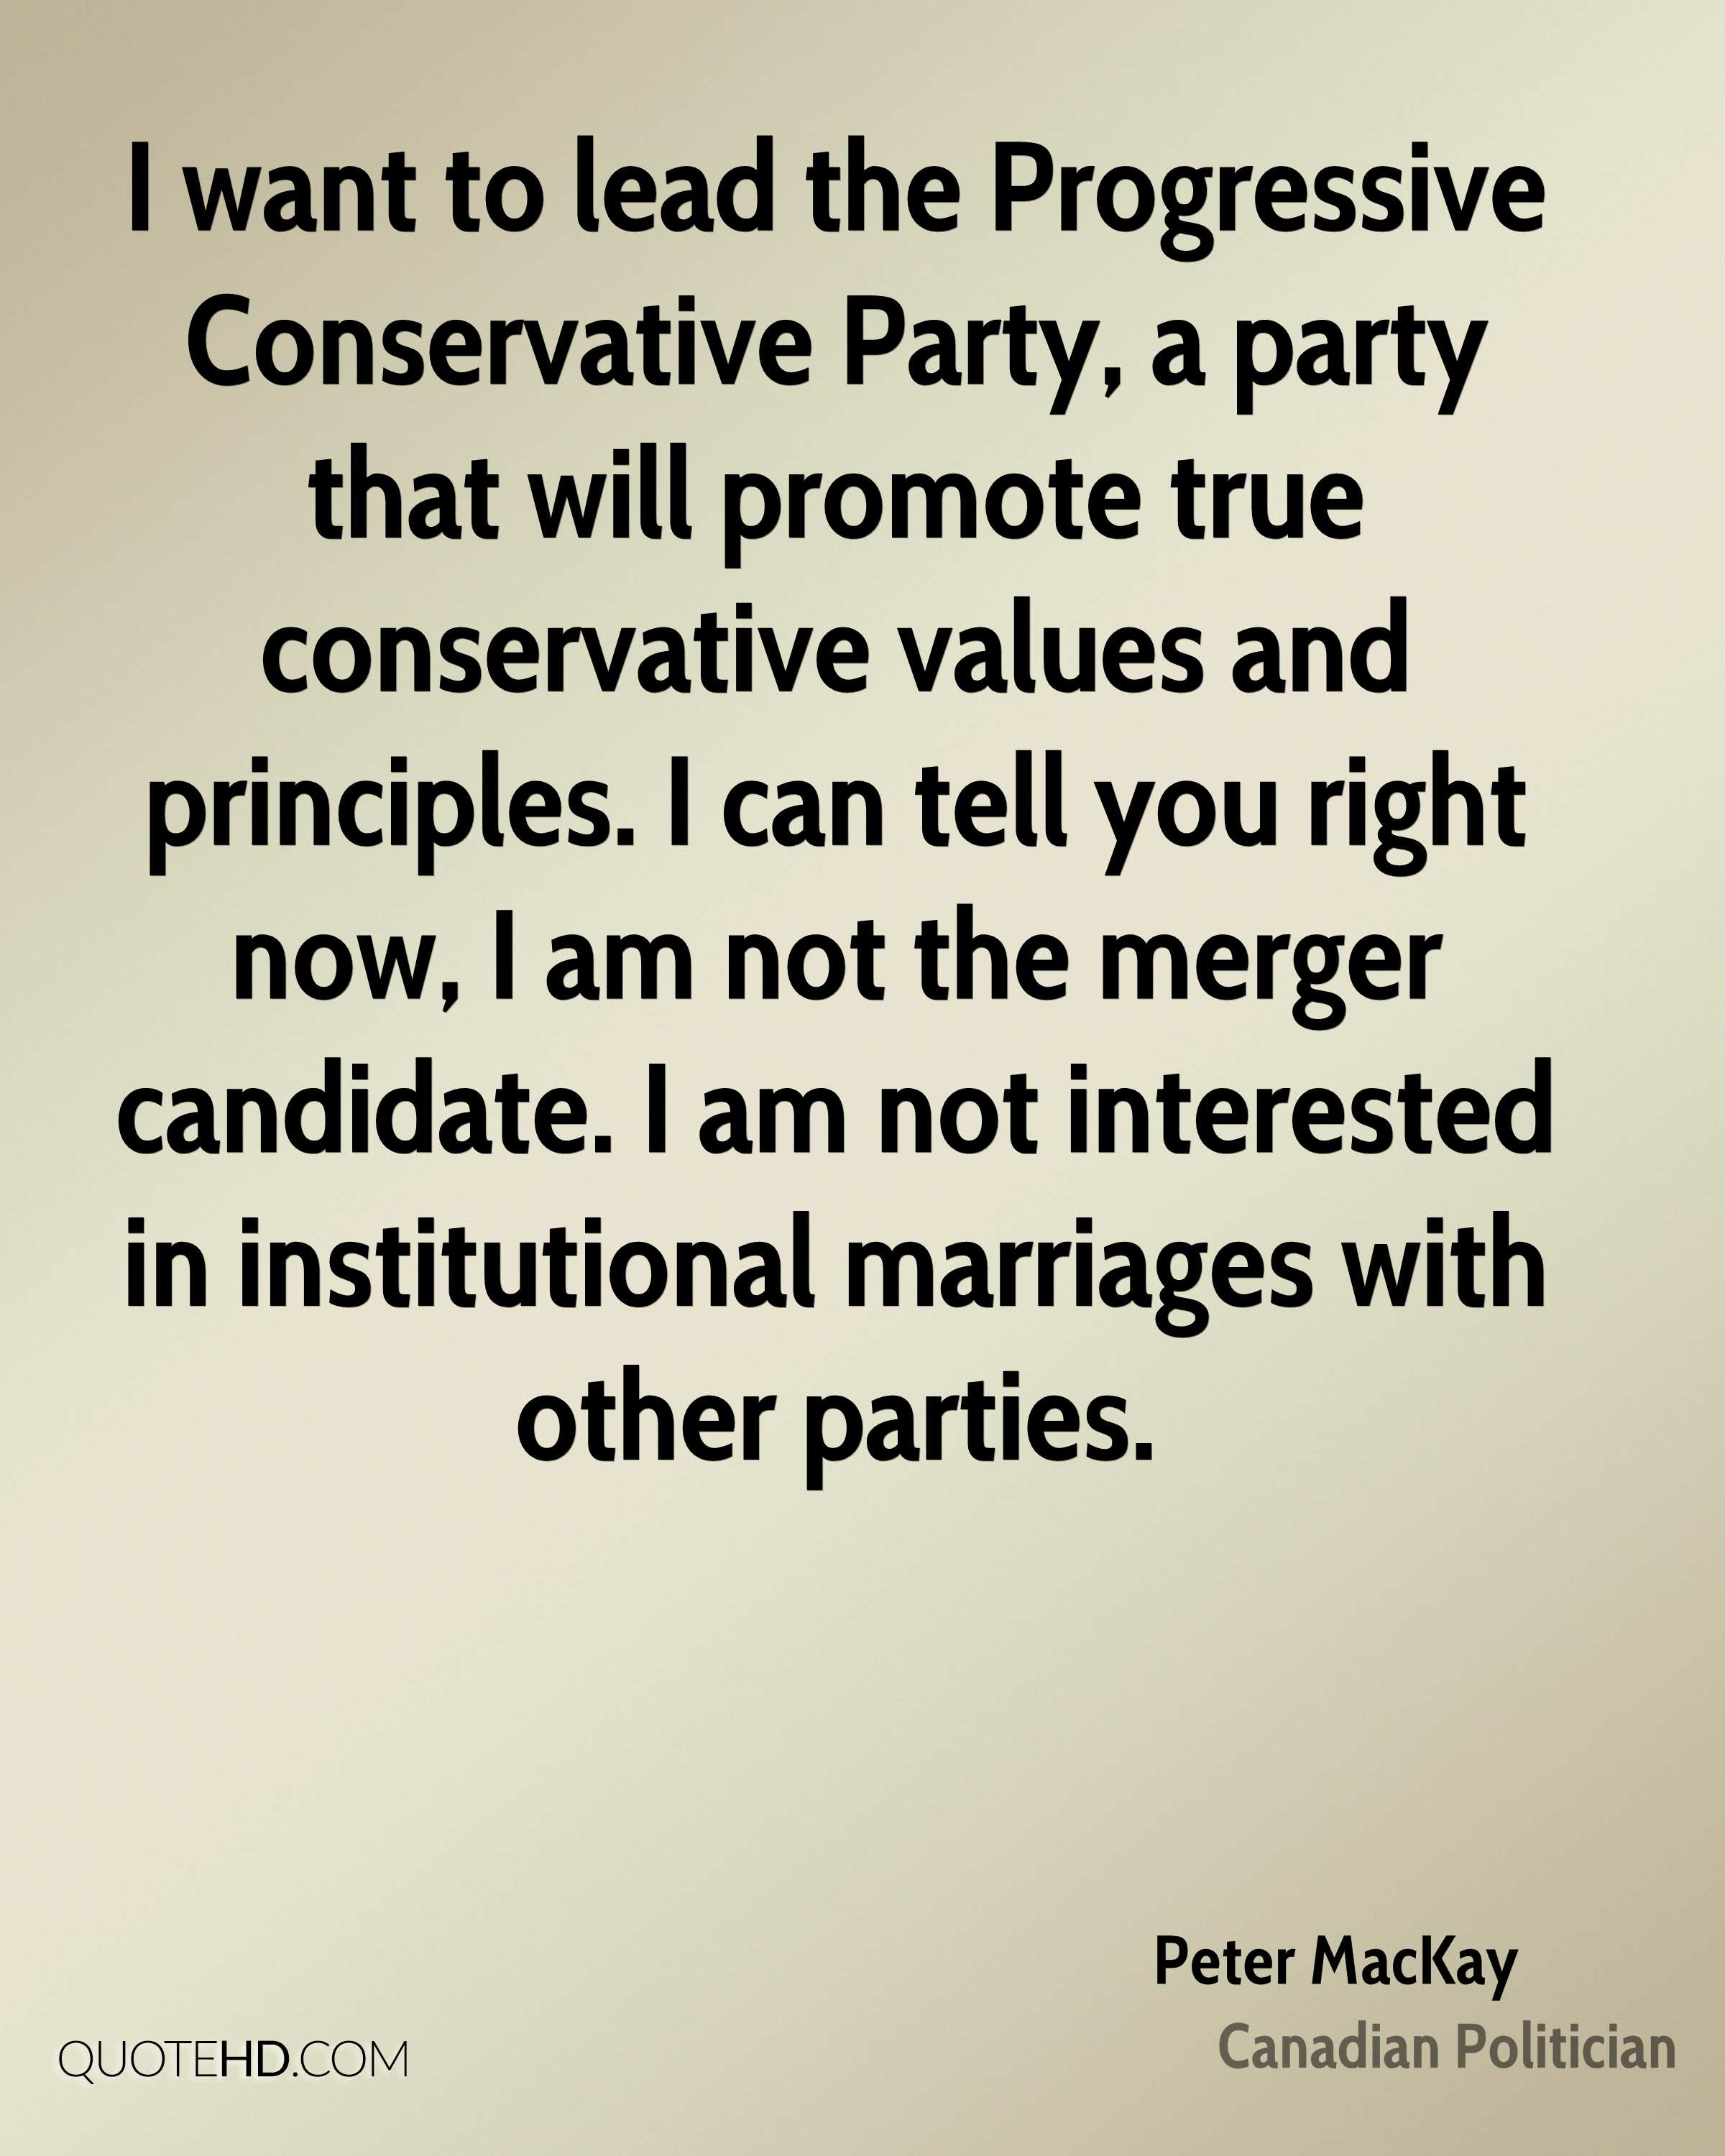 I want to lead the Progressive Conservative Party, a party that will promote true conservative values and principles. I can tell you right now, I am not the merger candidate. I am not interested in institutional marriages with other parties.